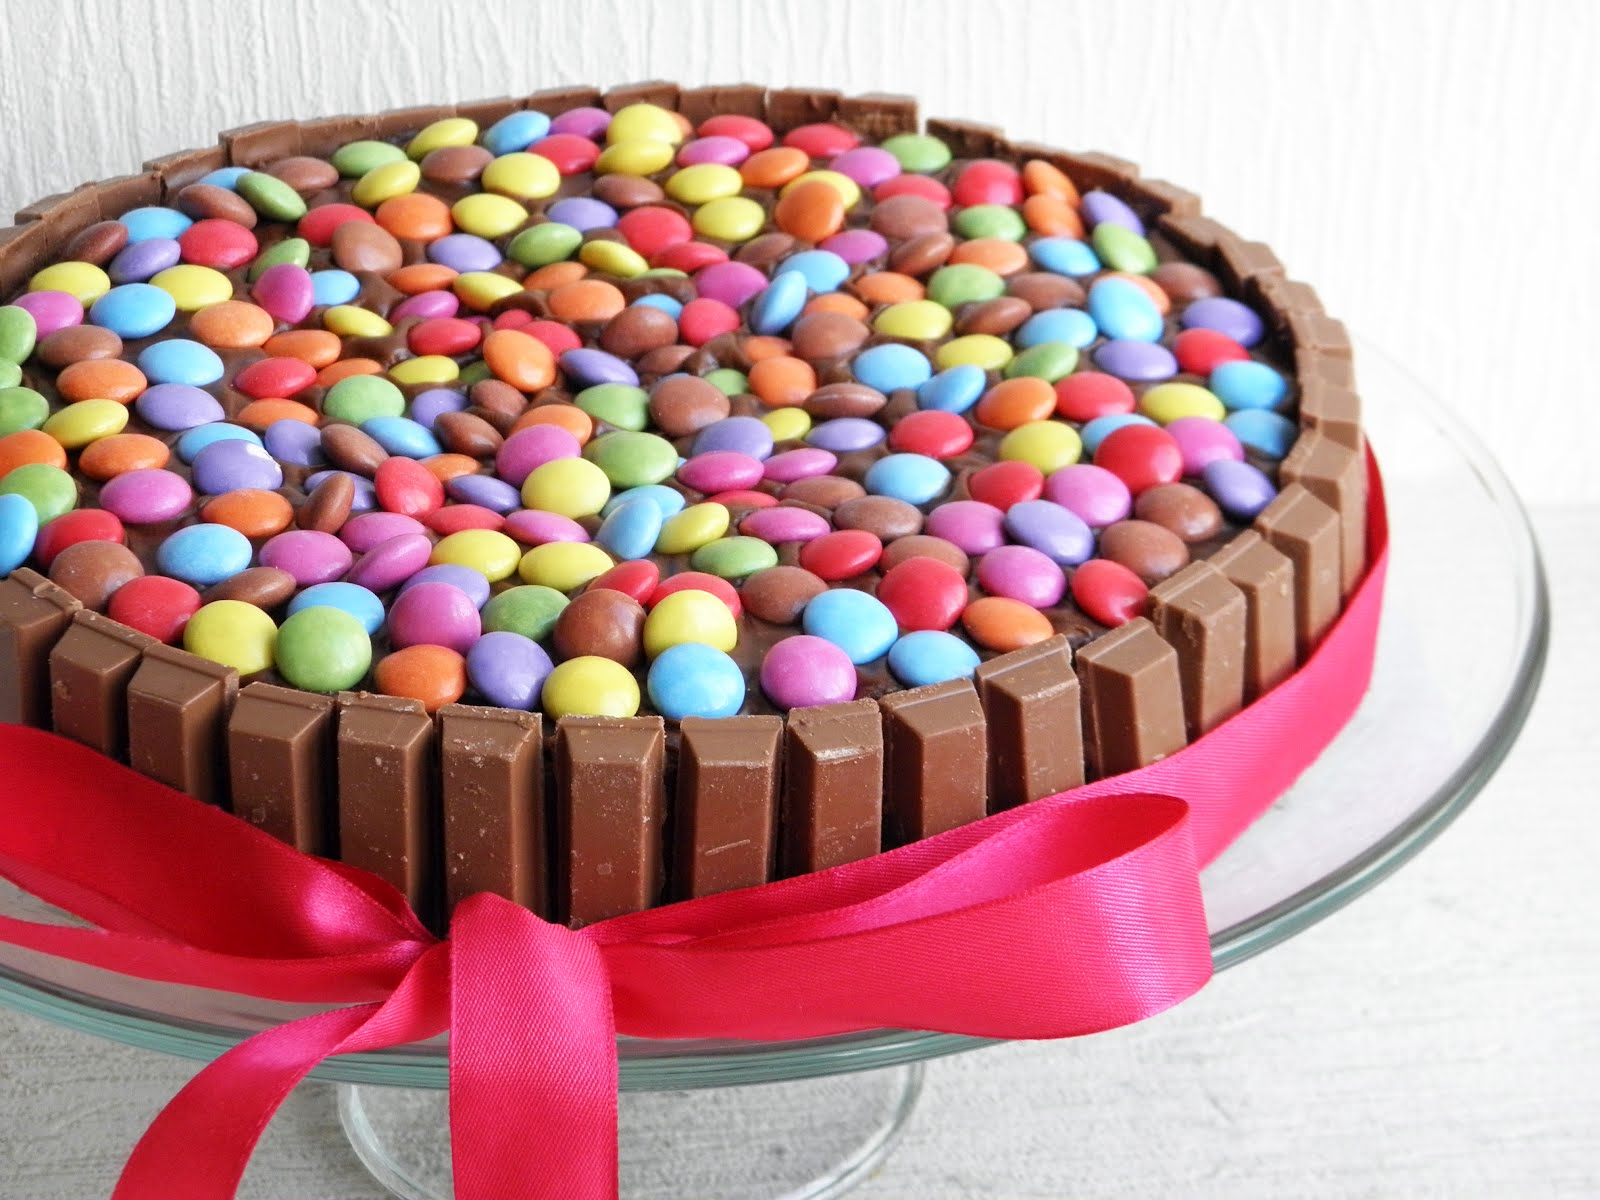 Smartie Cake With Chocolate Fingers